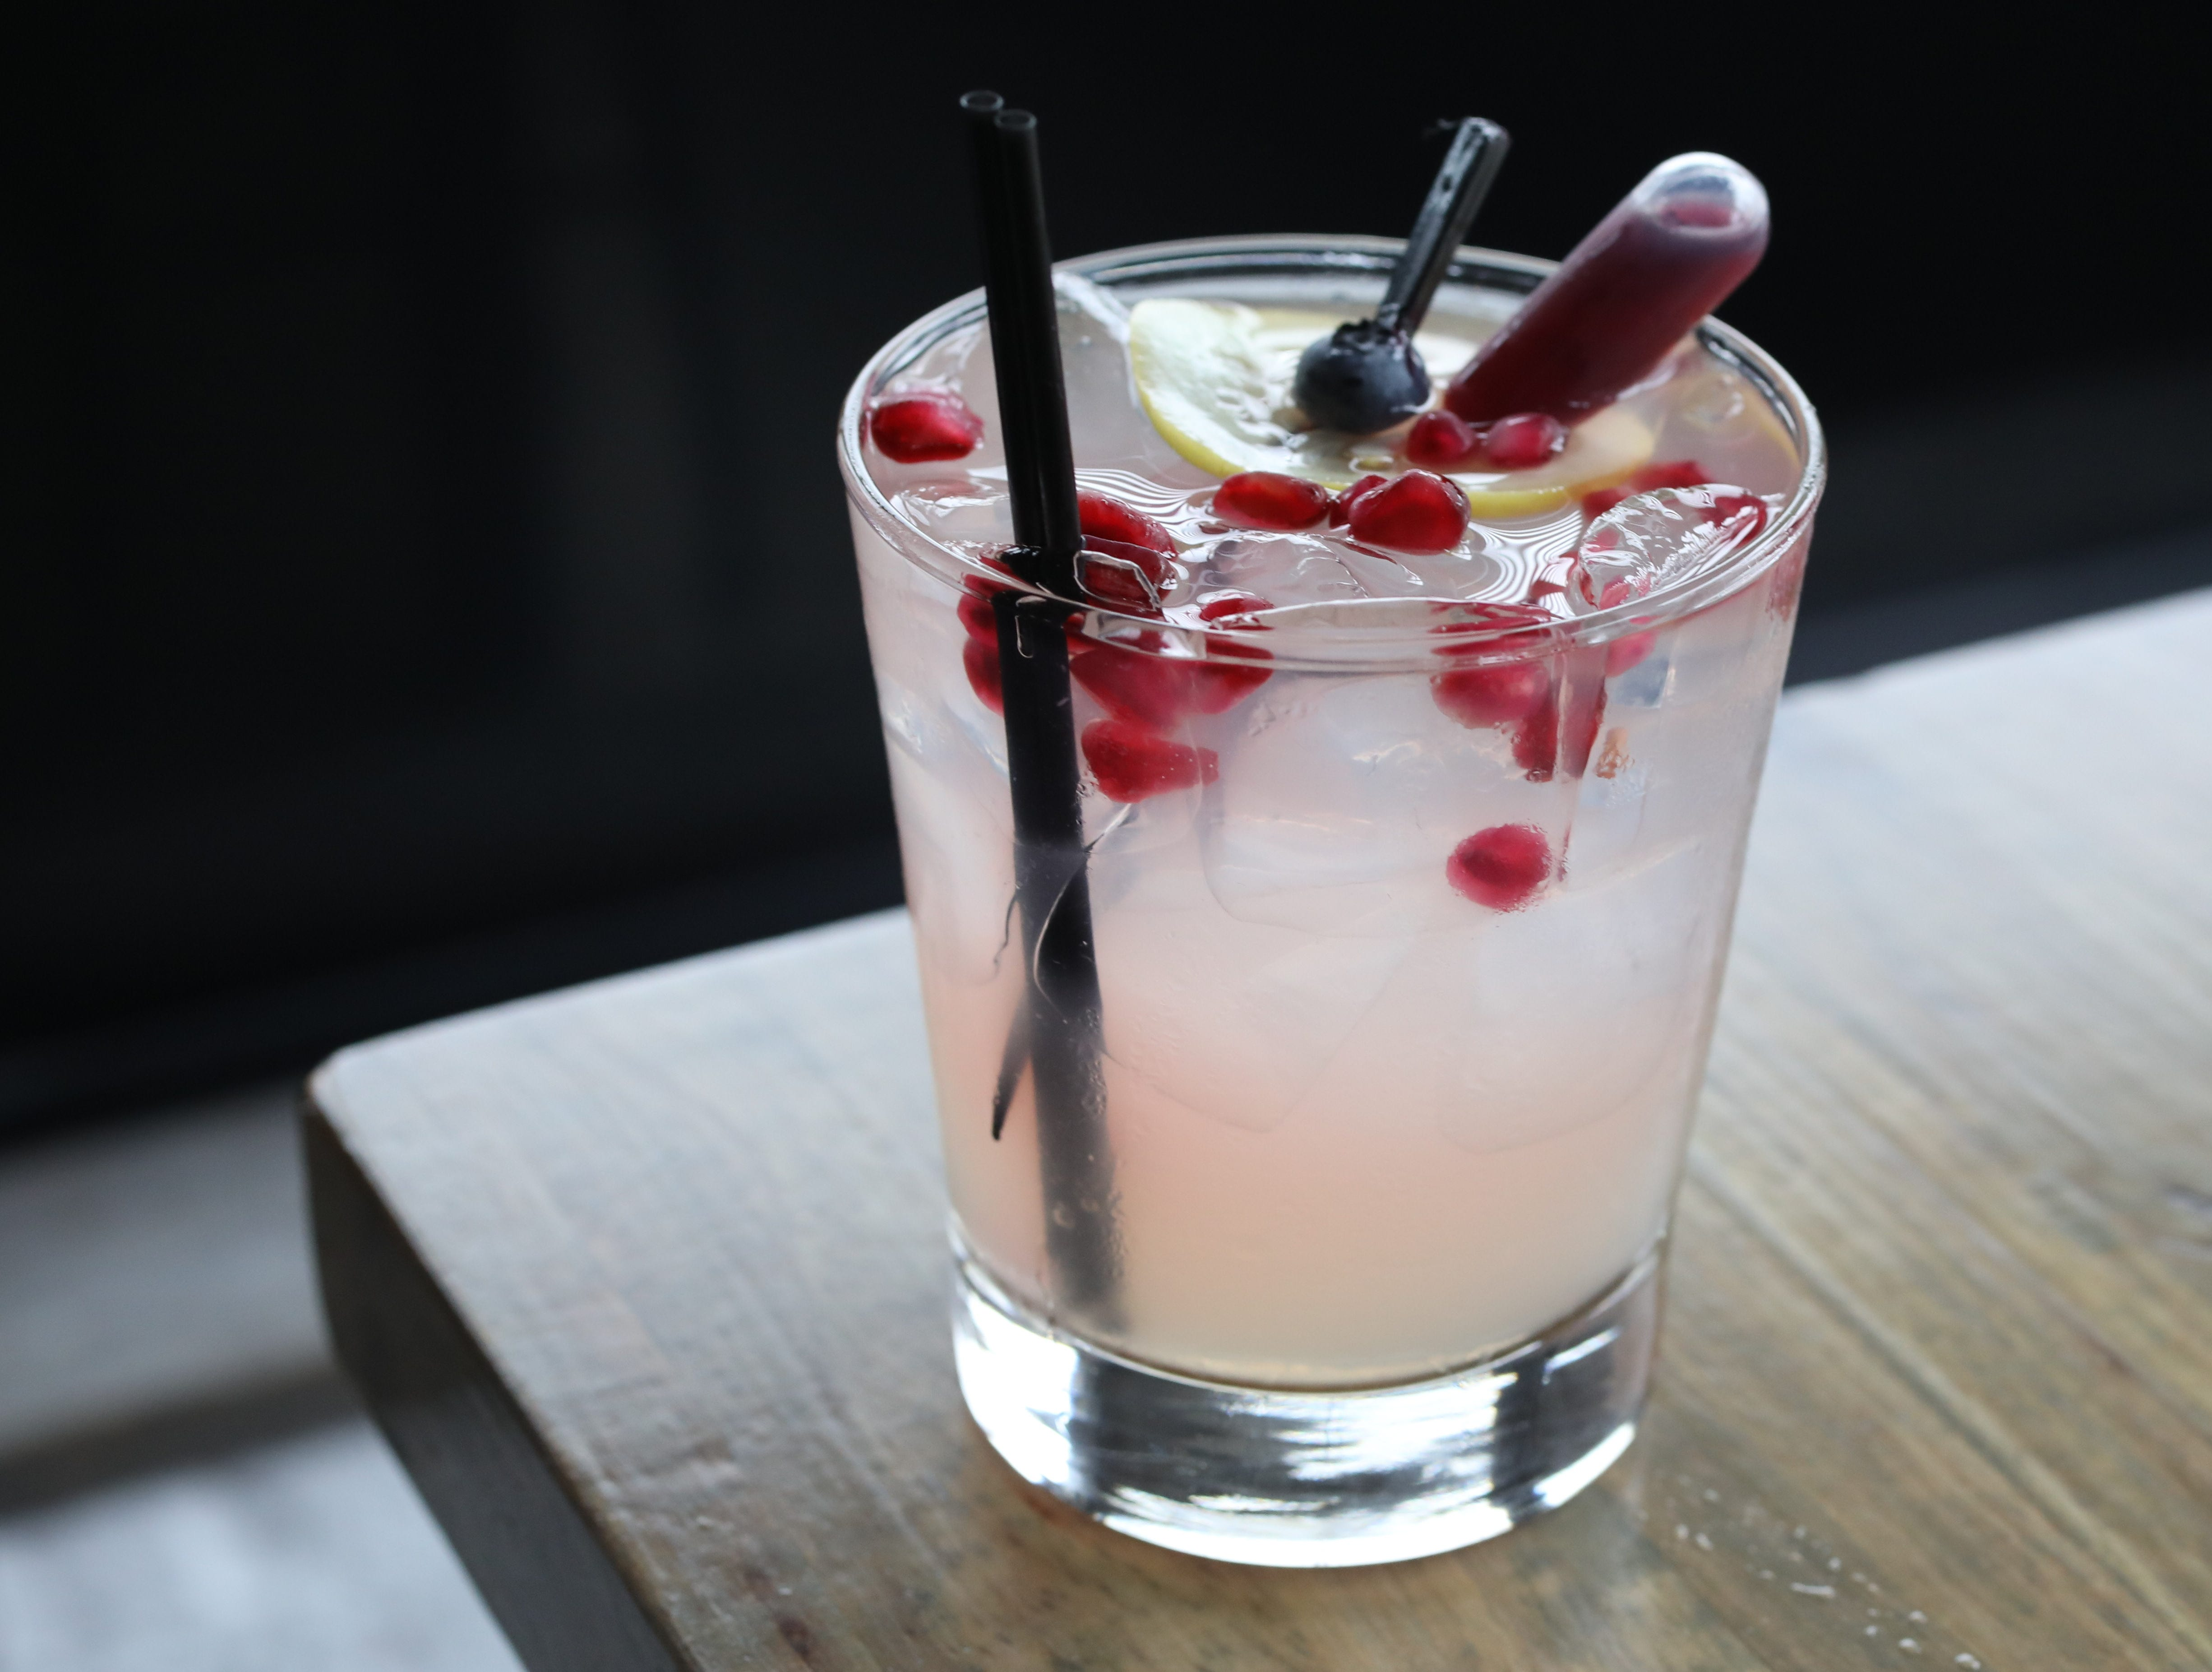 MARK VERGARI: The Lilly-Belle cocktail at Southern Table Kitchen & Bar in Pleasantville, photographed April 25, 2018.